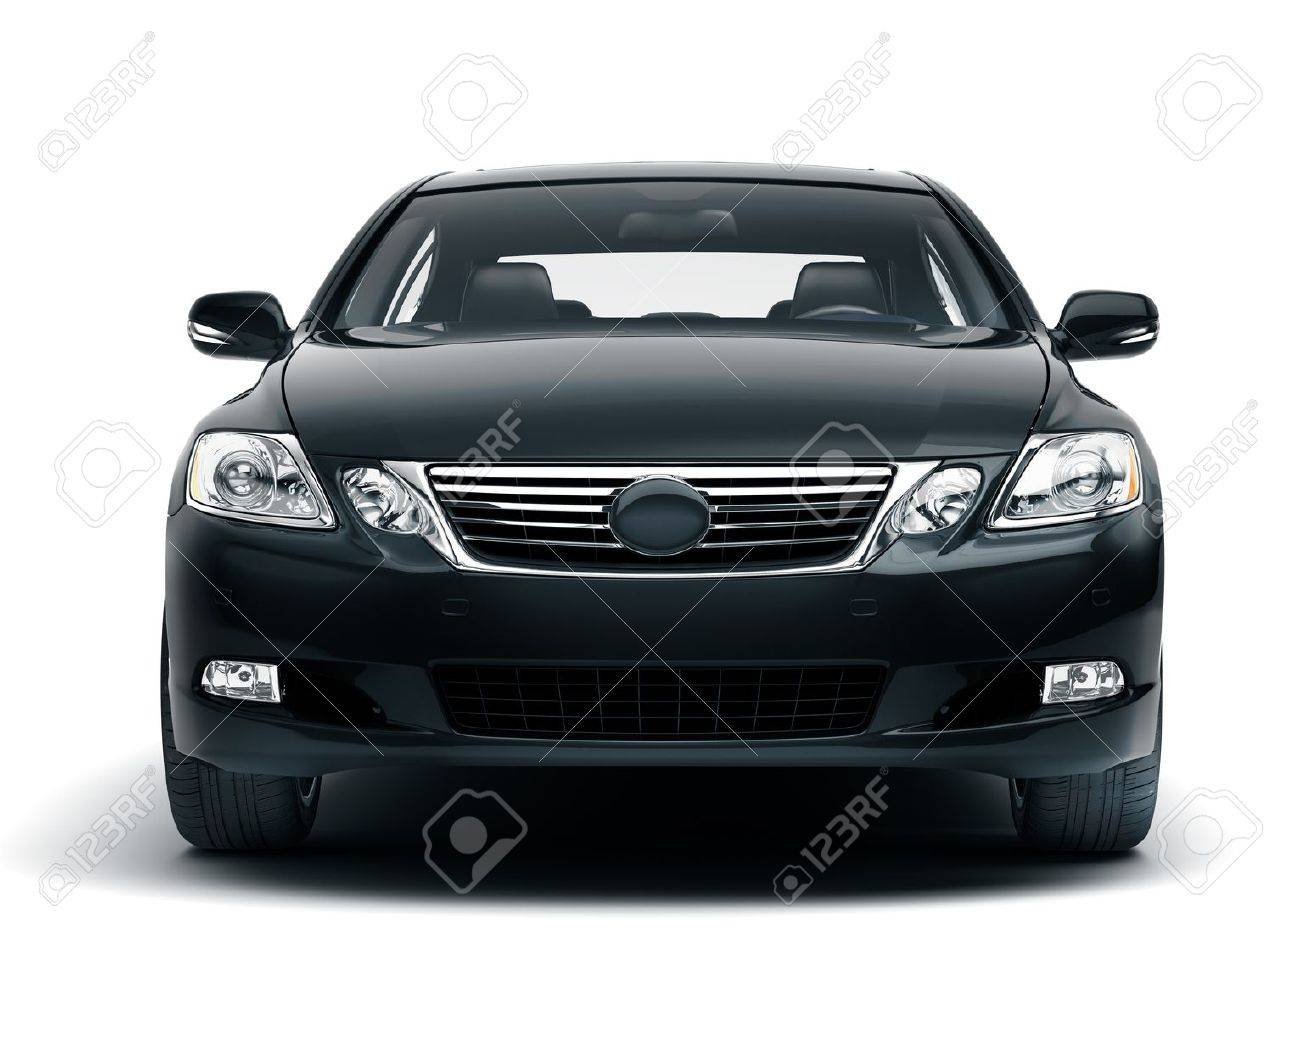 Luxury car in the studio on a light background Stock Photo - 20561288